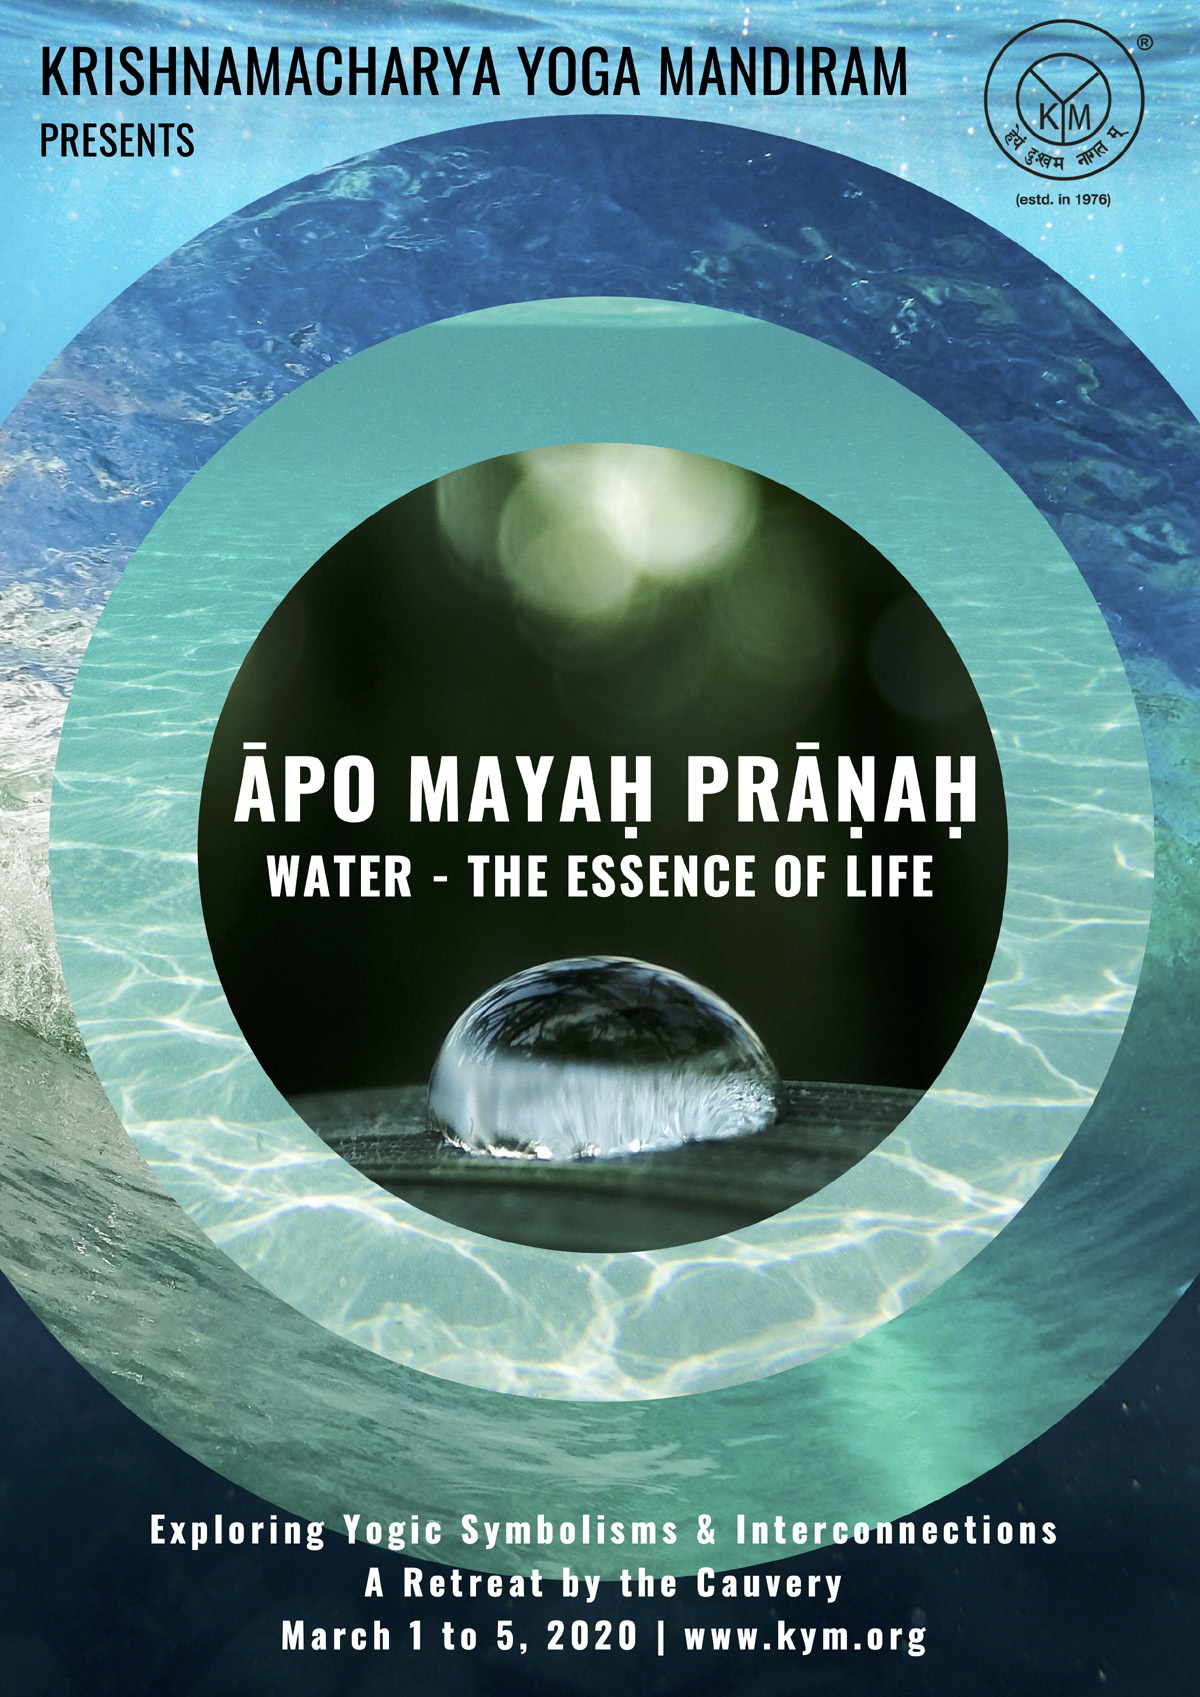 Āpo Mayaḥ Prāṇaḥ – Celebrating Water, the Essence of Life